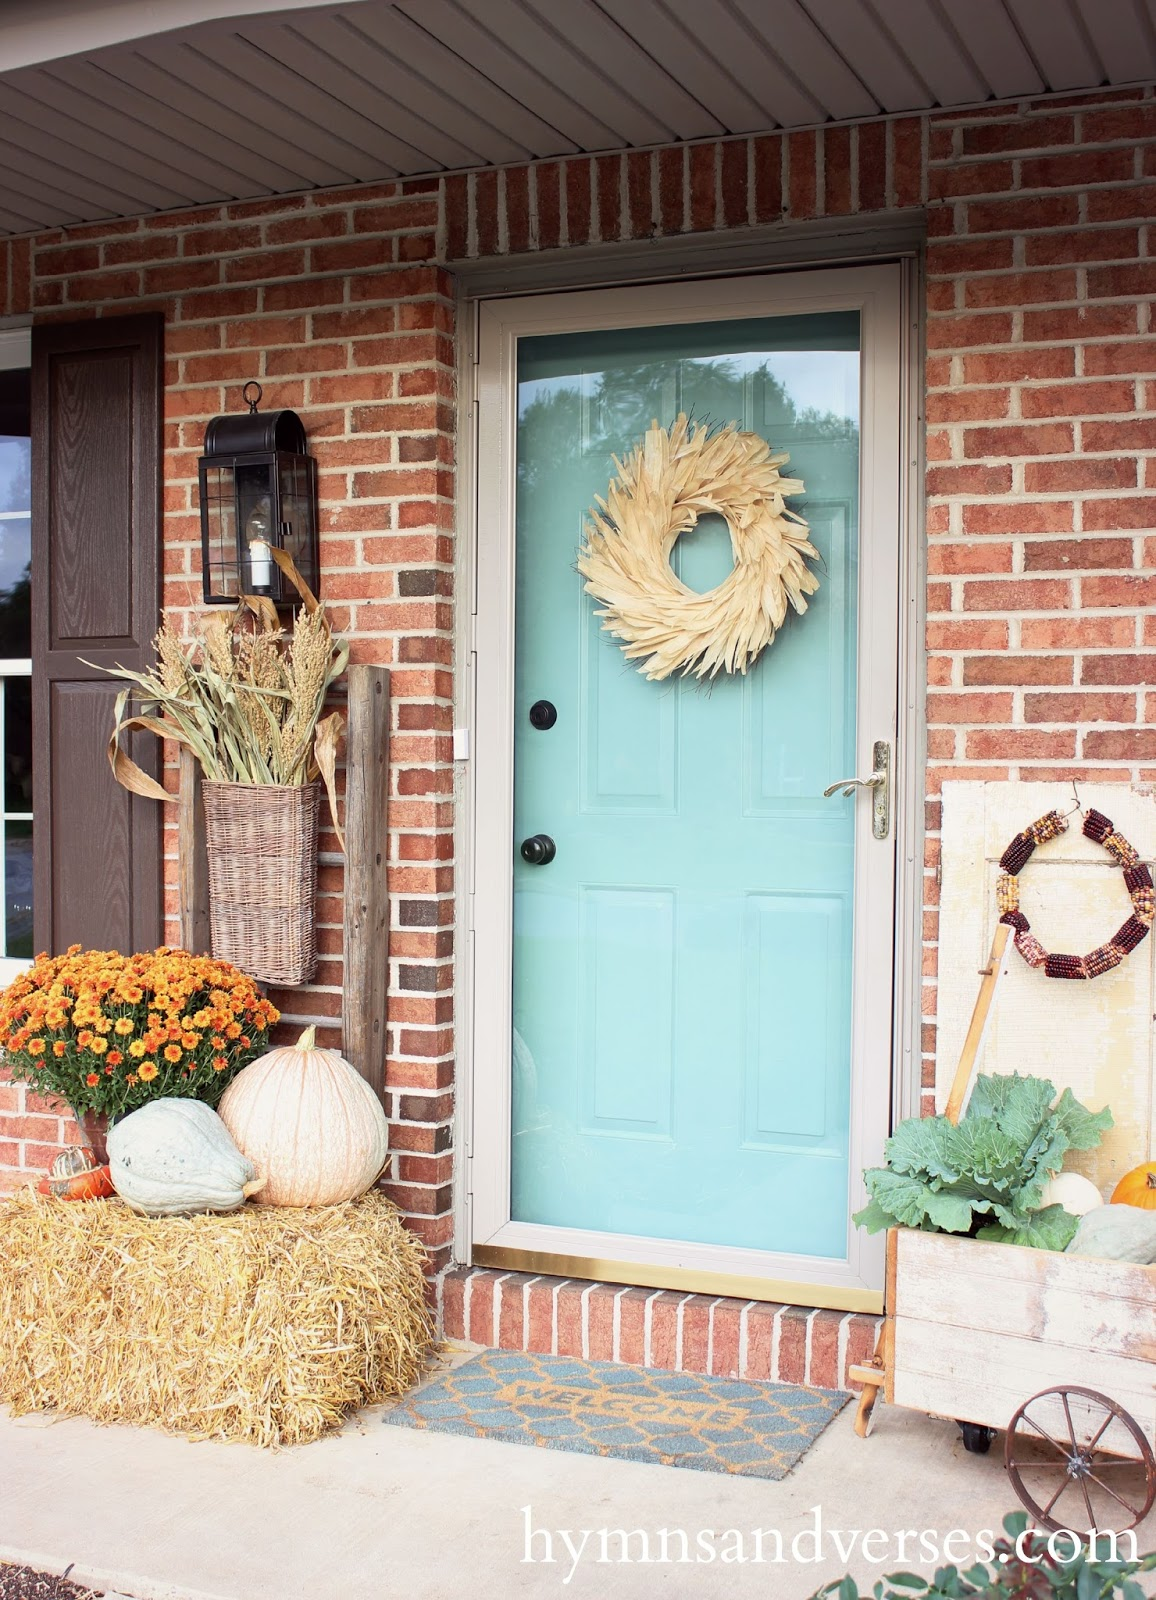 Easy Fall Outdoor Decor - Hymns and Verses